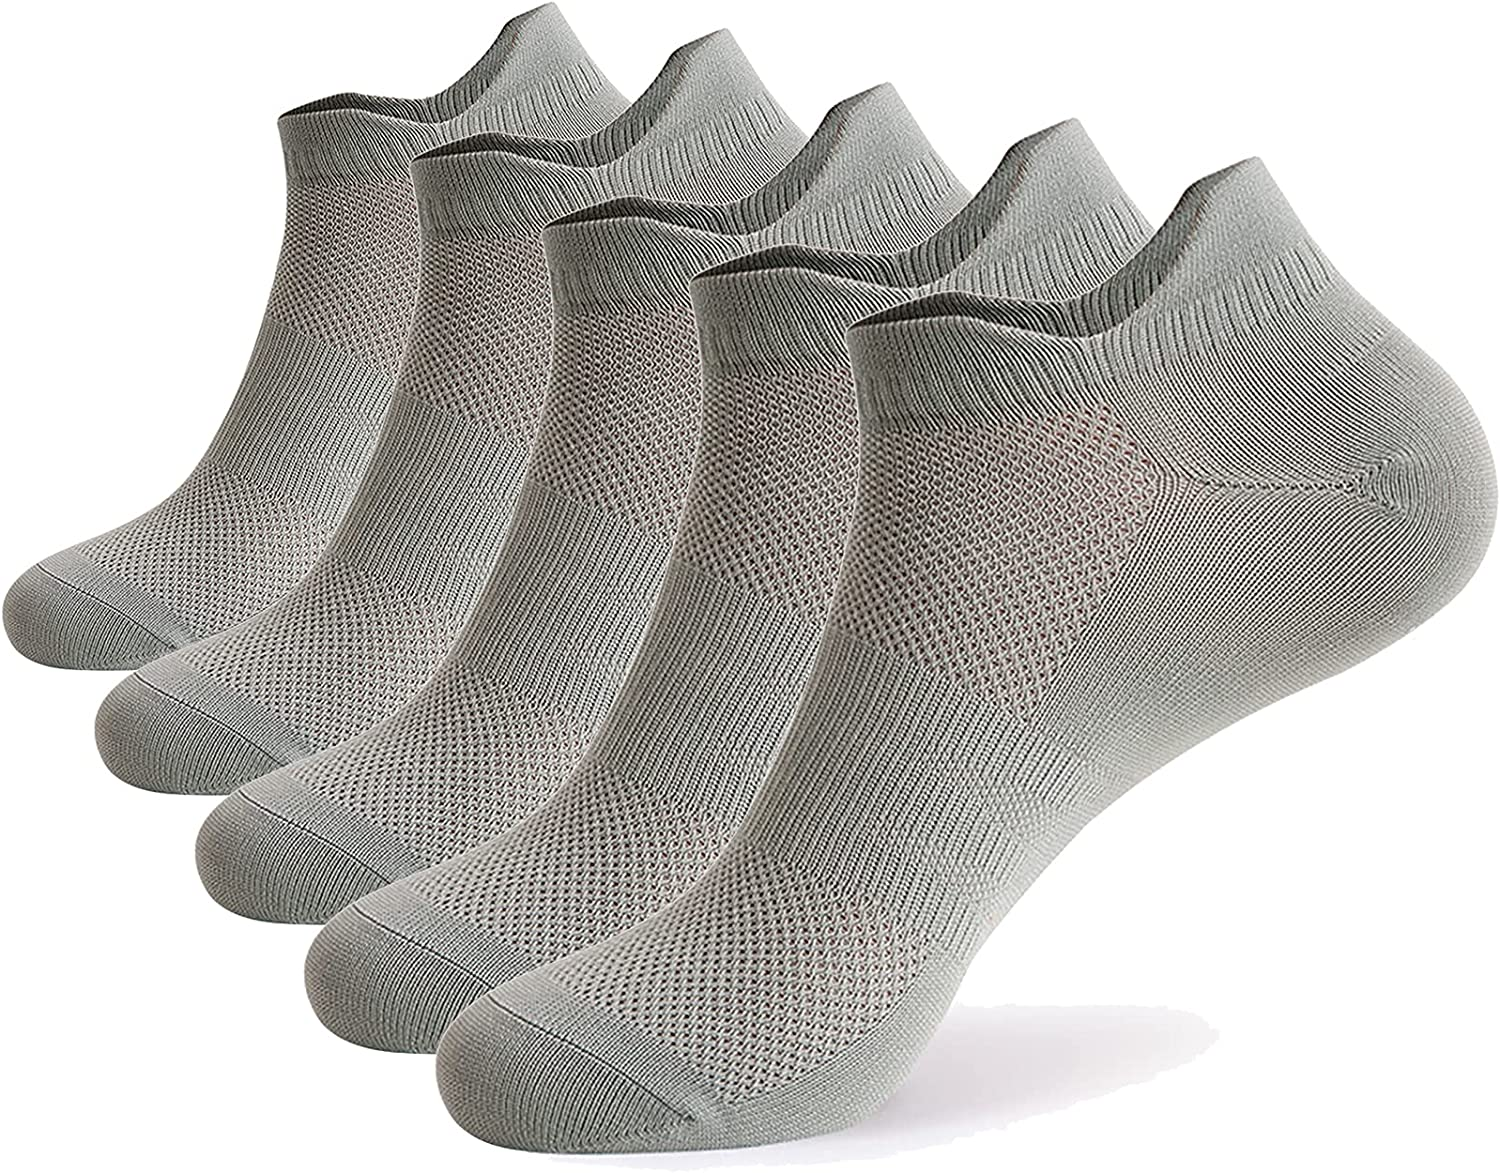 Ultrafun 5 Pairs Unisex Ankle Minneapolis Mall Cushioned Performan Limited price sale Socks Athletic